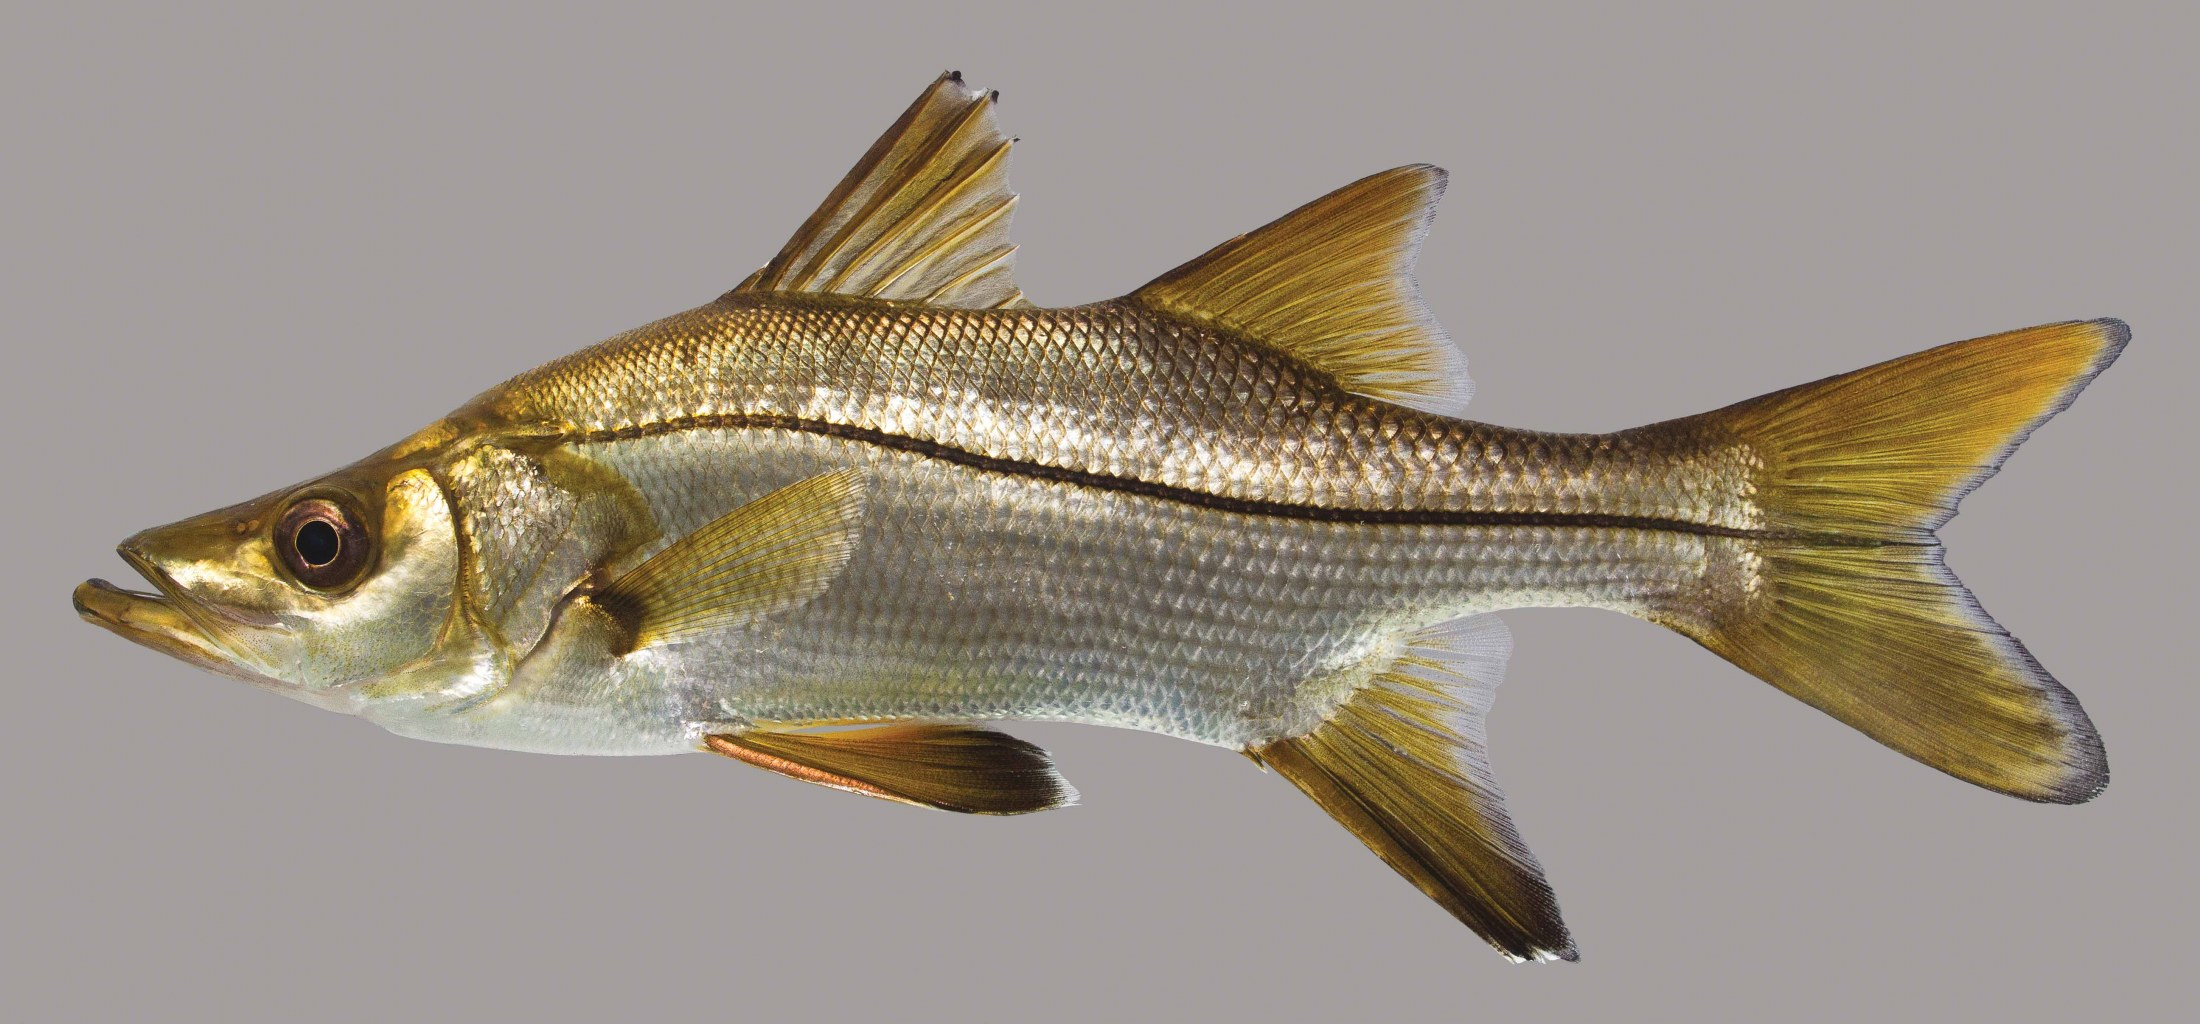 Lateral view of a tarpon snook